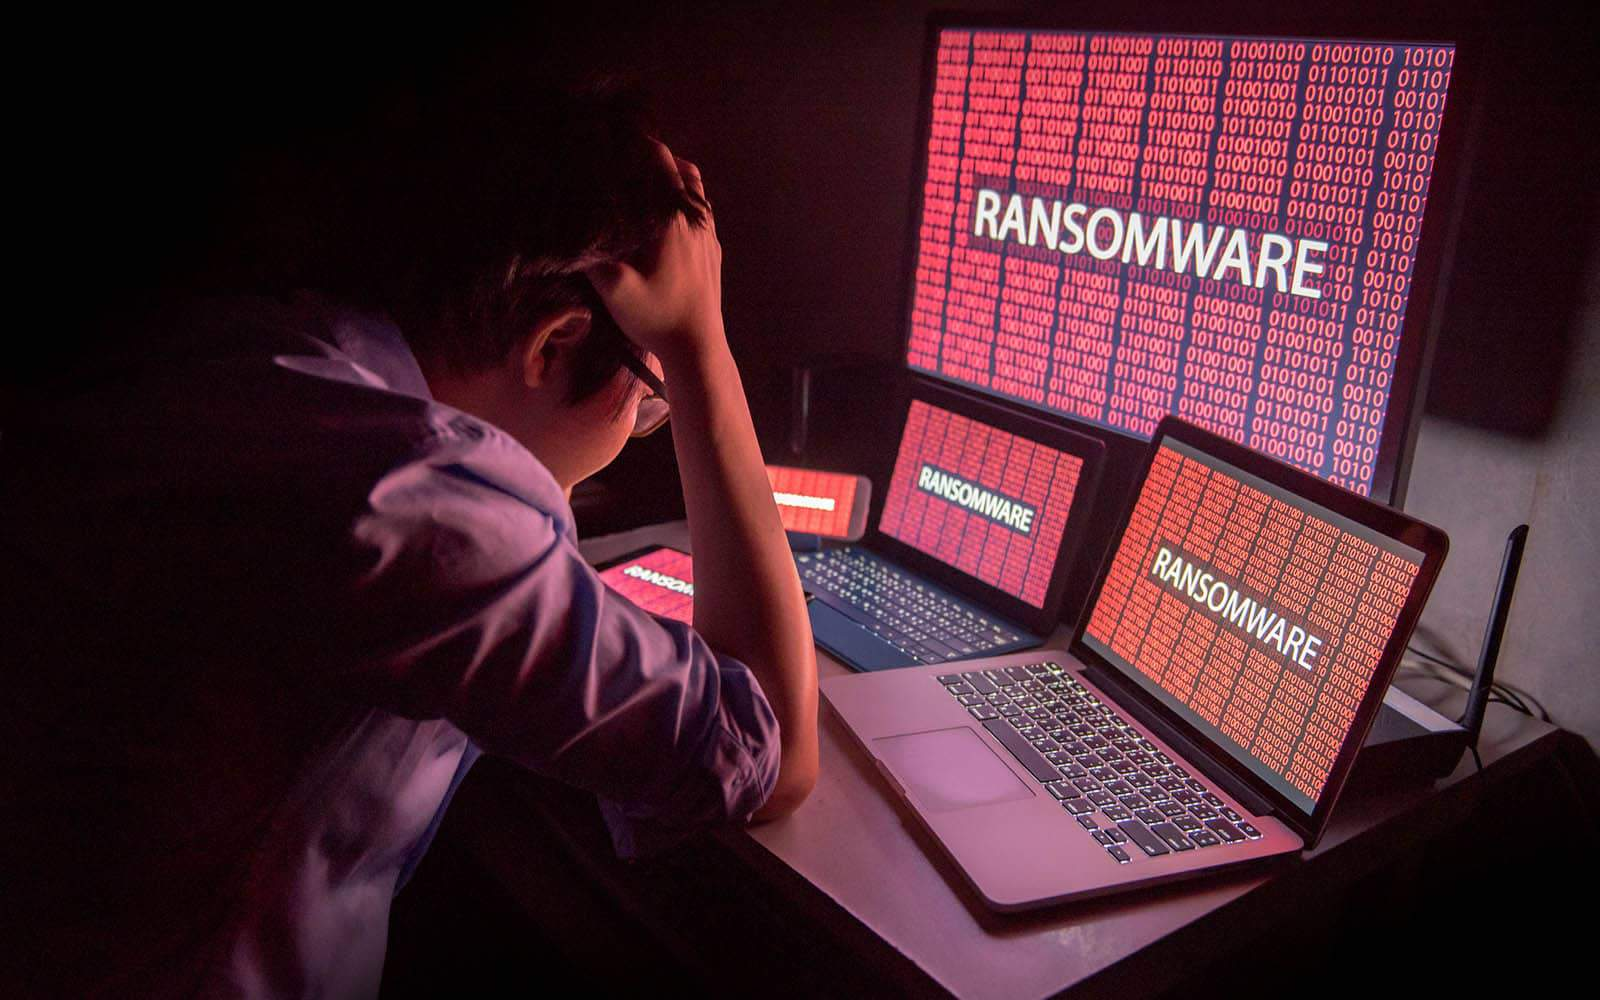 Ransomware Prevention and Tips to Protect Your Data